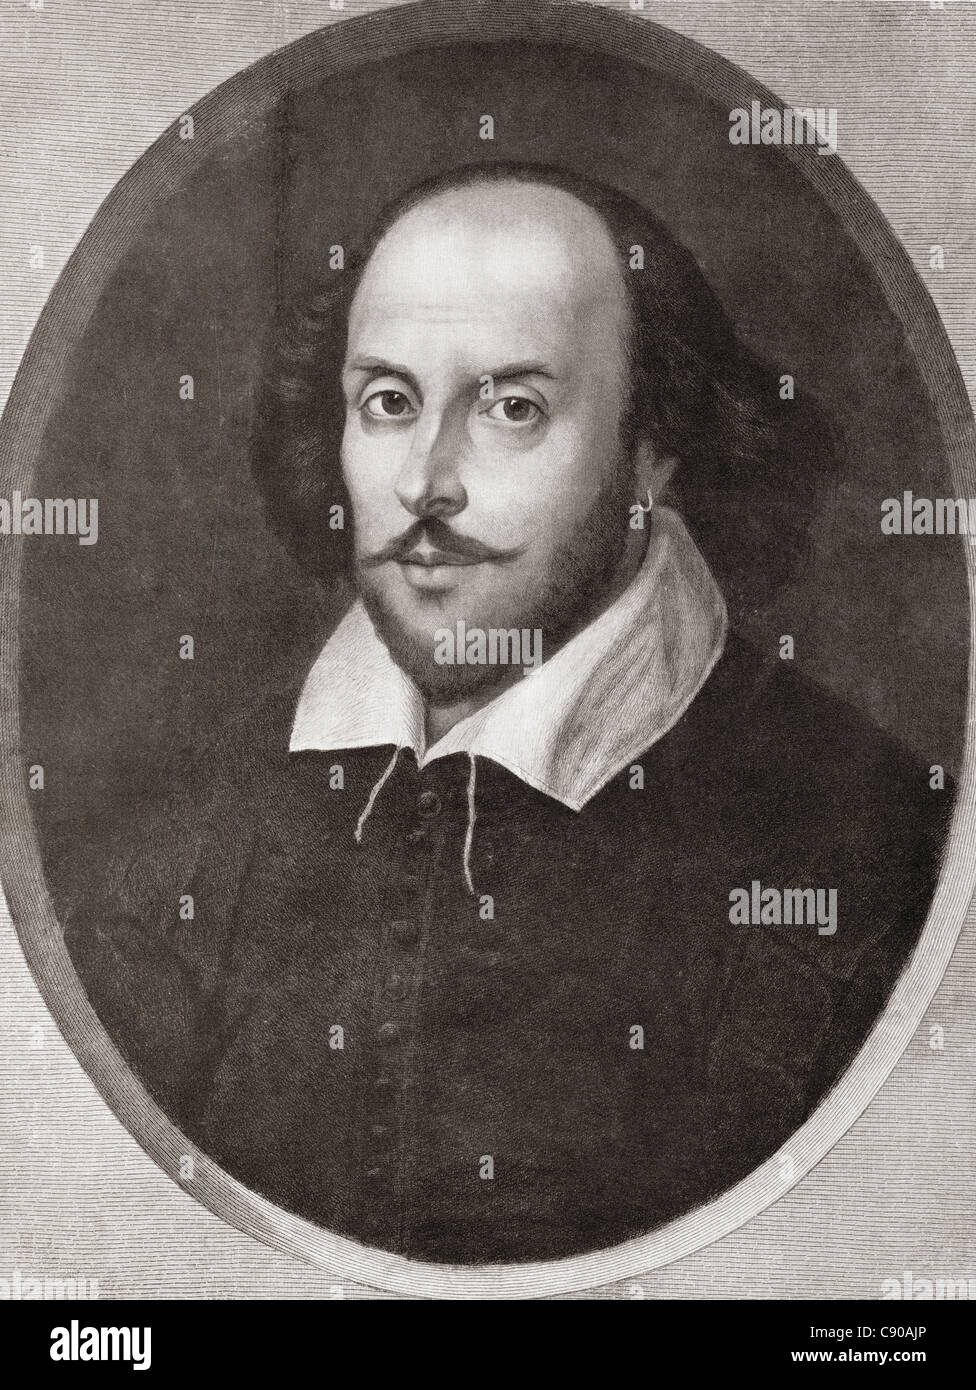 William Shakespeare, 1564 - 1616. English poet and playwright. From Bibby's Annual published 1910. Stock Photo